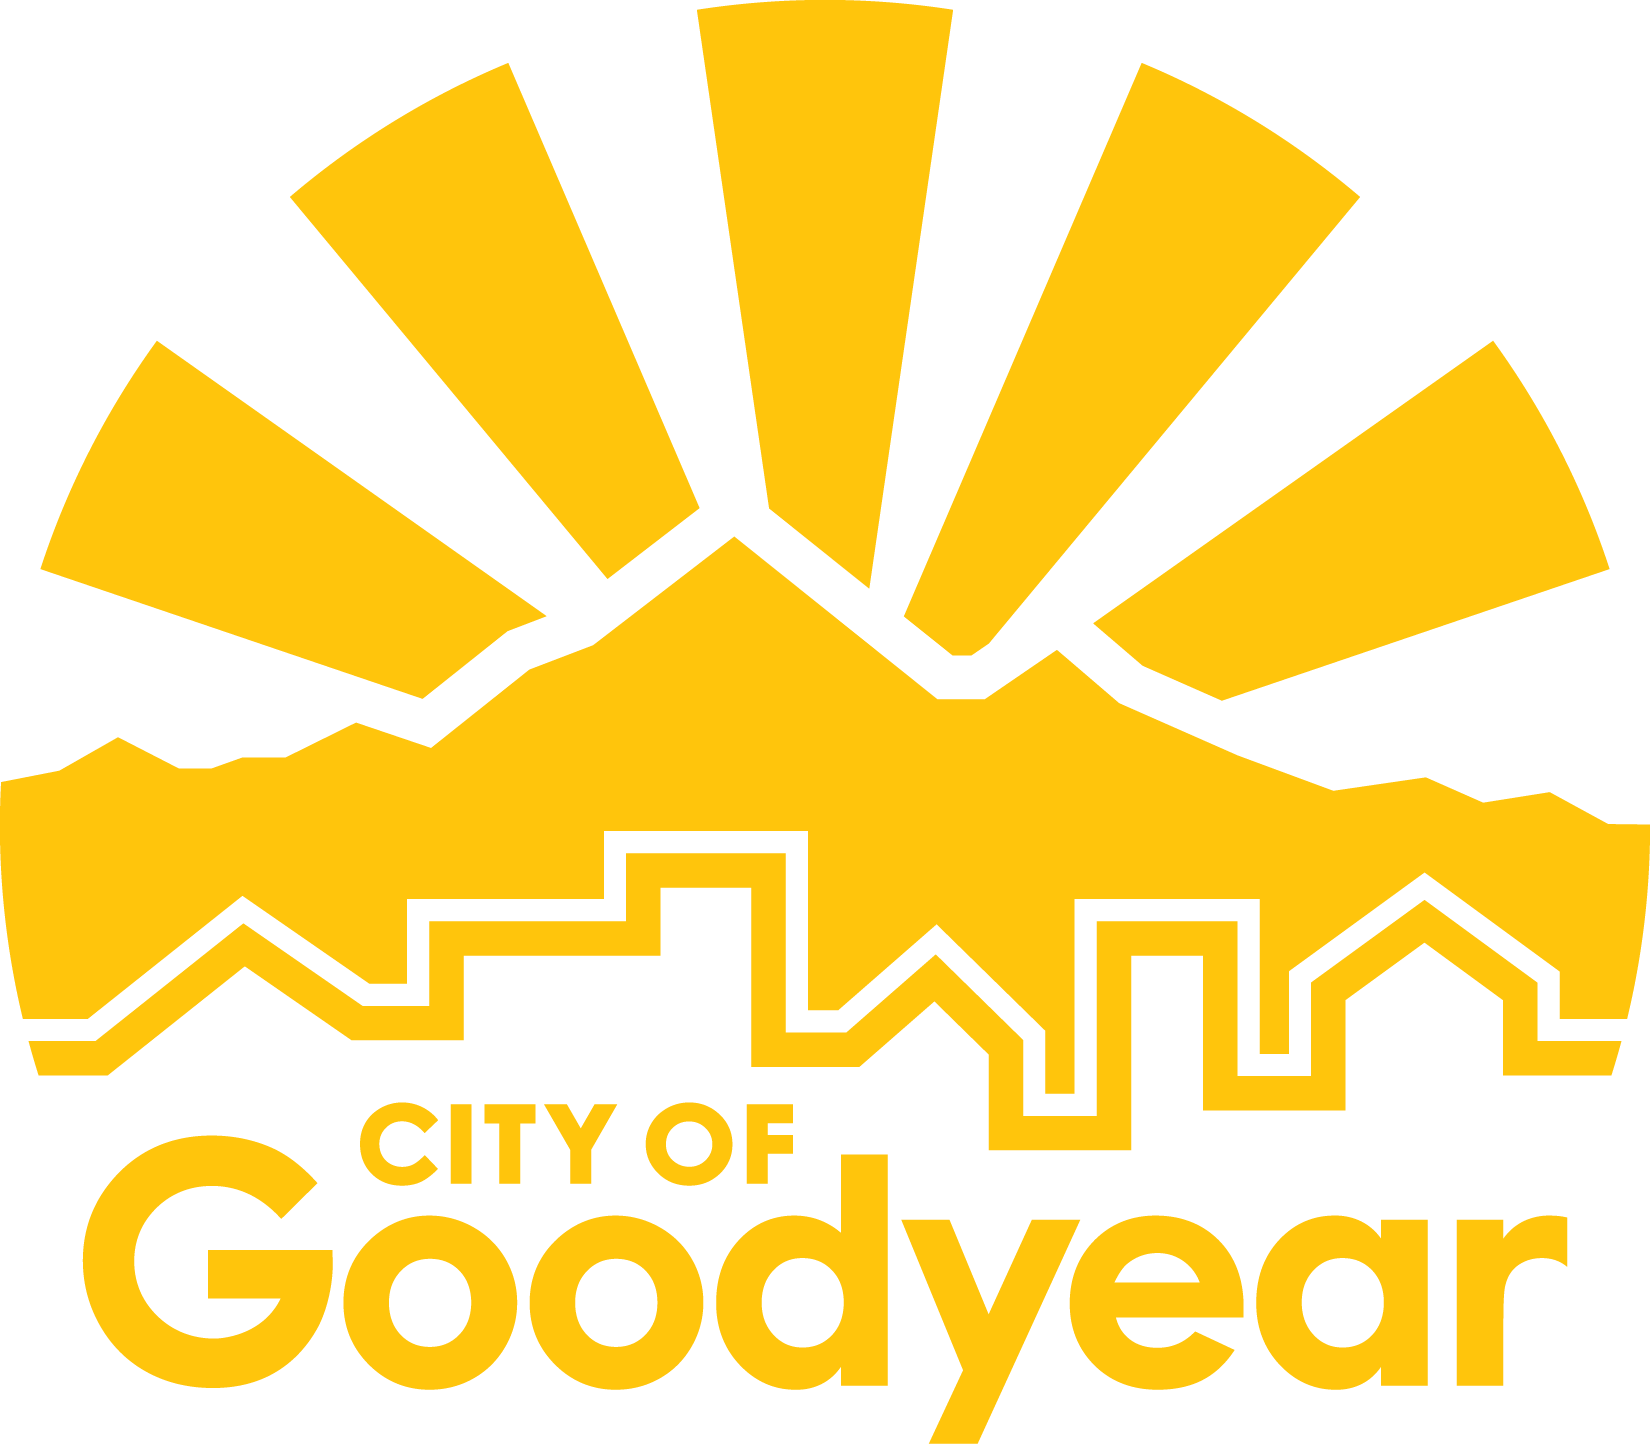 Statistics clipart job seeker. Opportunities city of goodyear